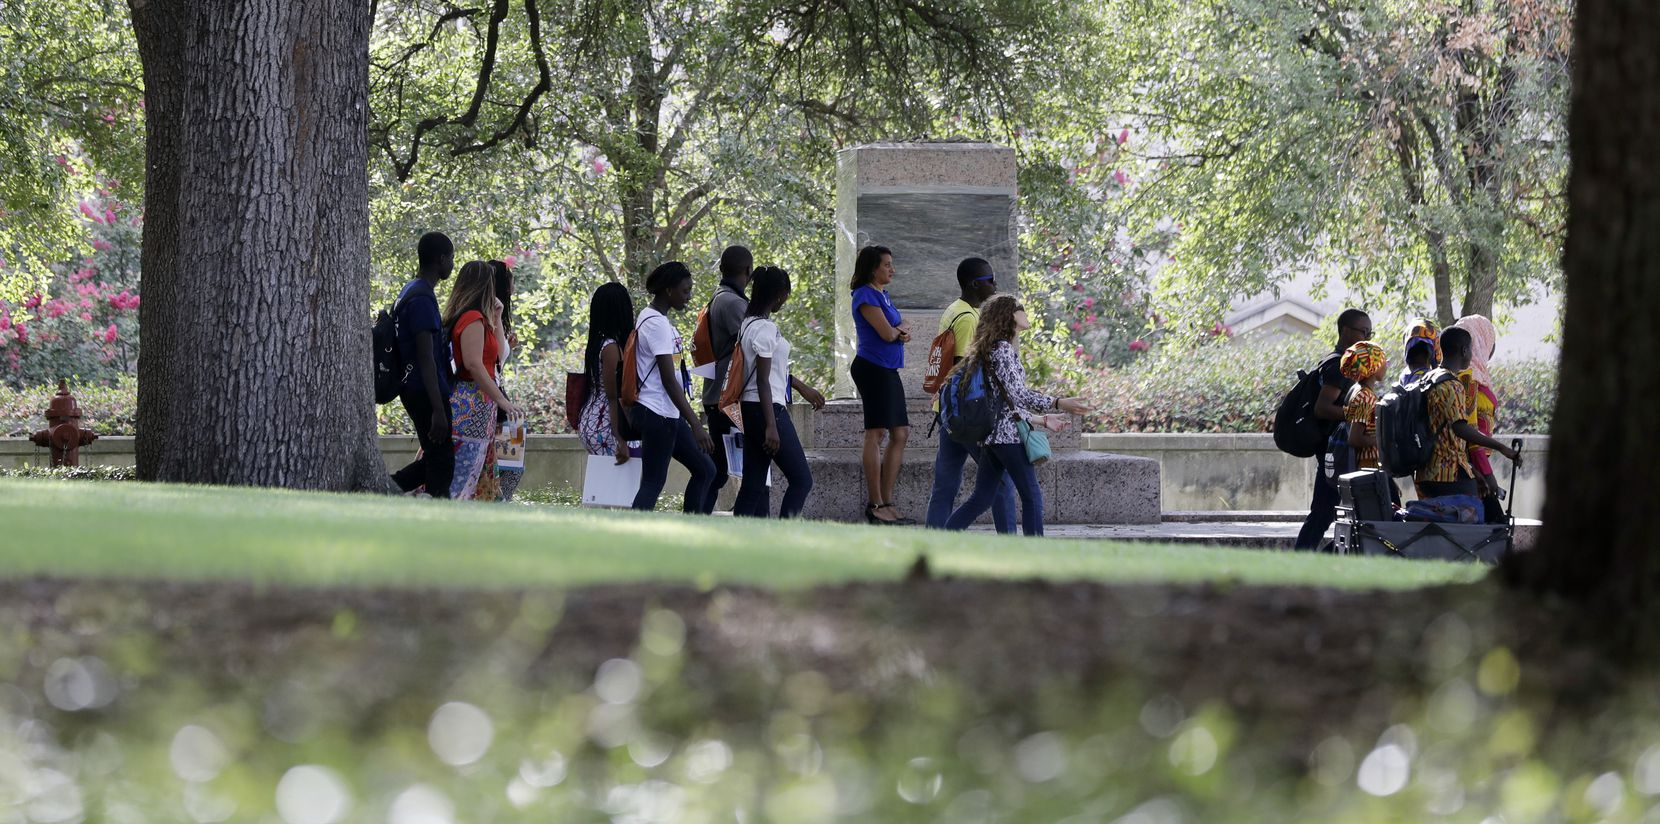 Students pass a pedestal wrapped in plastic that had hosted a statue of Confederate Postmaster General John H. Reagan which was removed from the University of Texas campus early Monday morning, Aug. 21, 2017, in Austin, Texas.